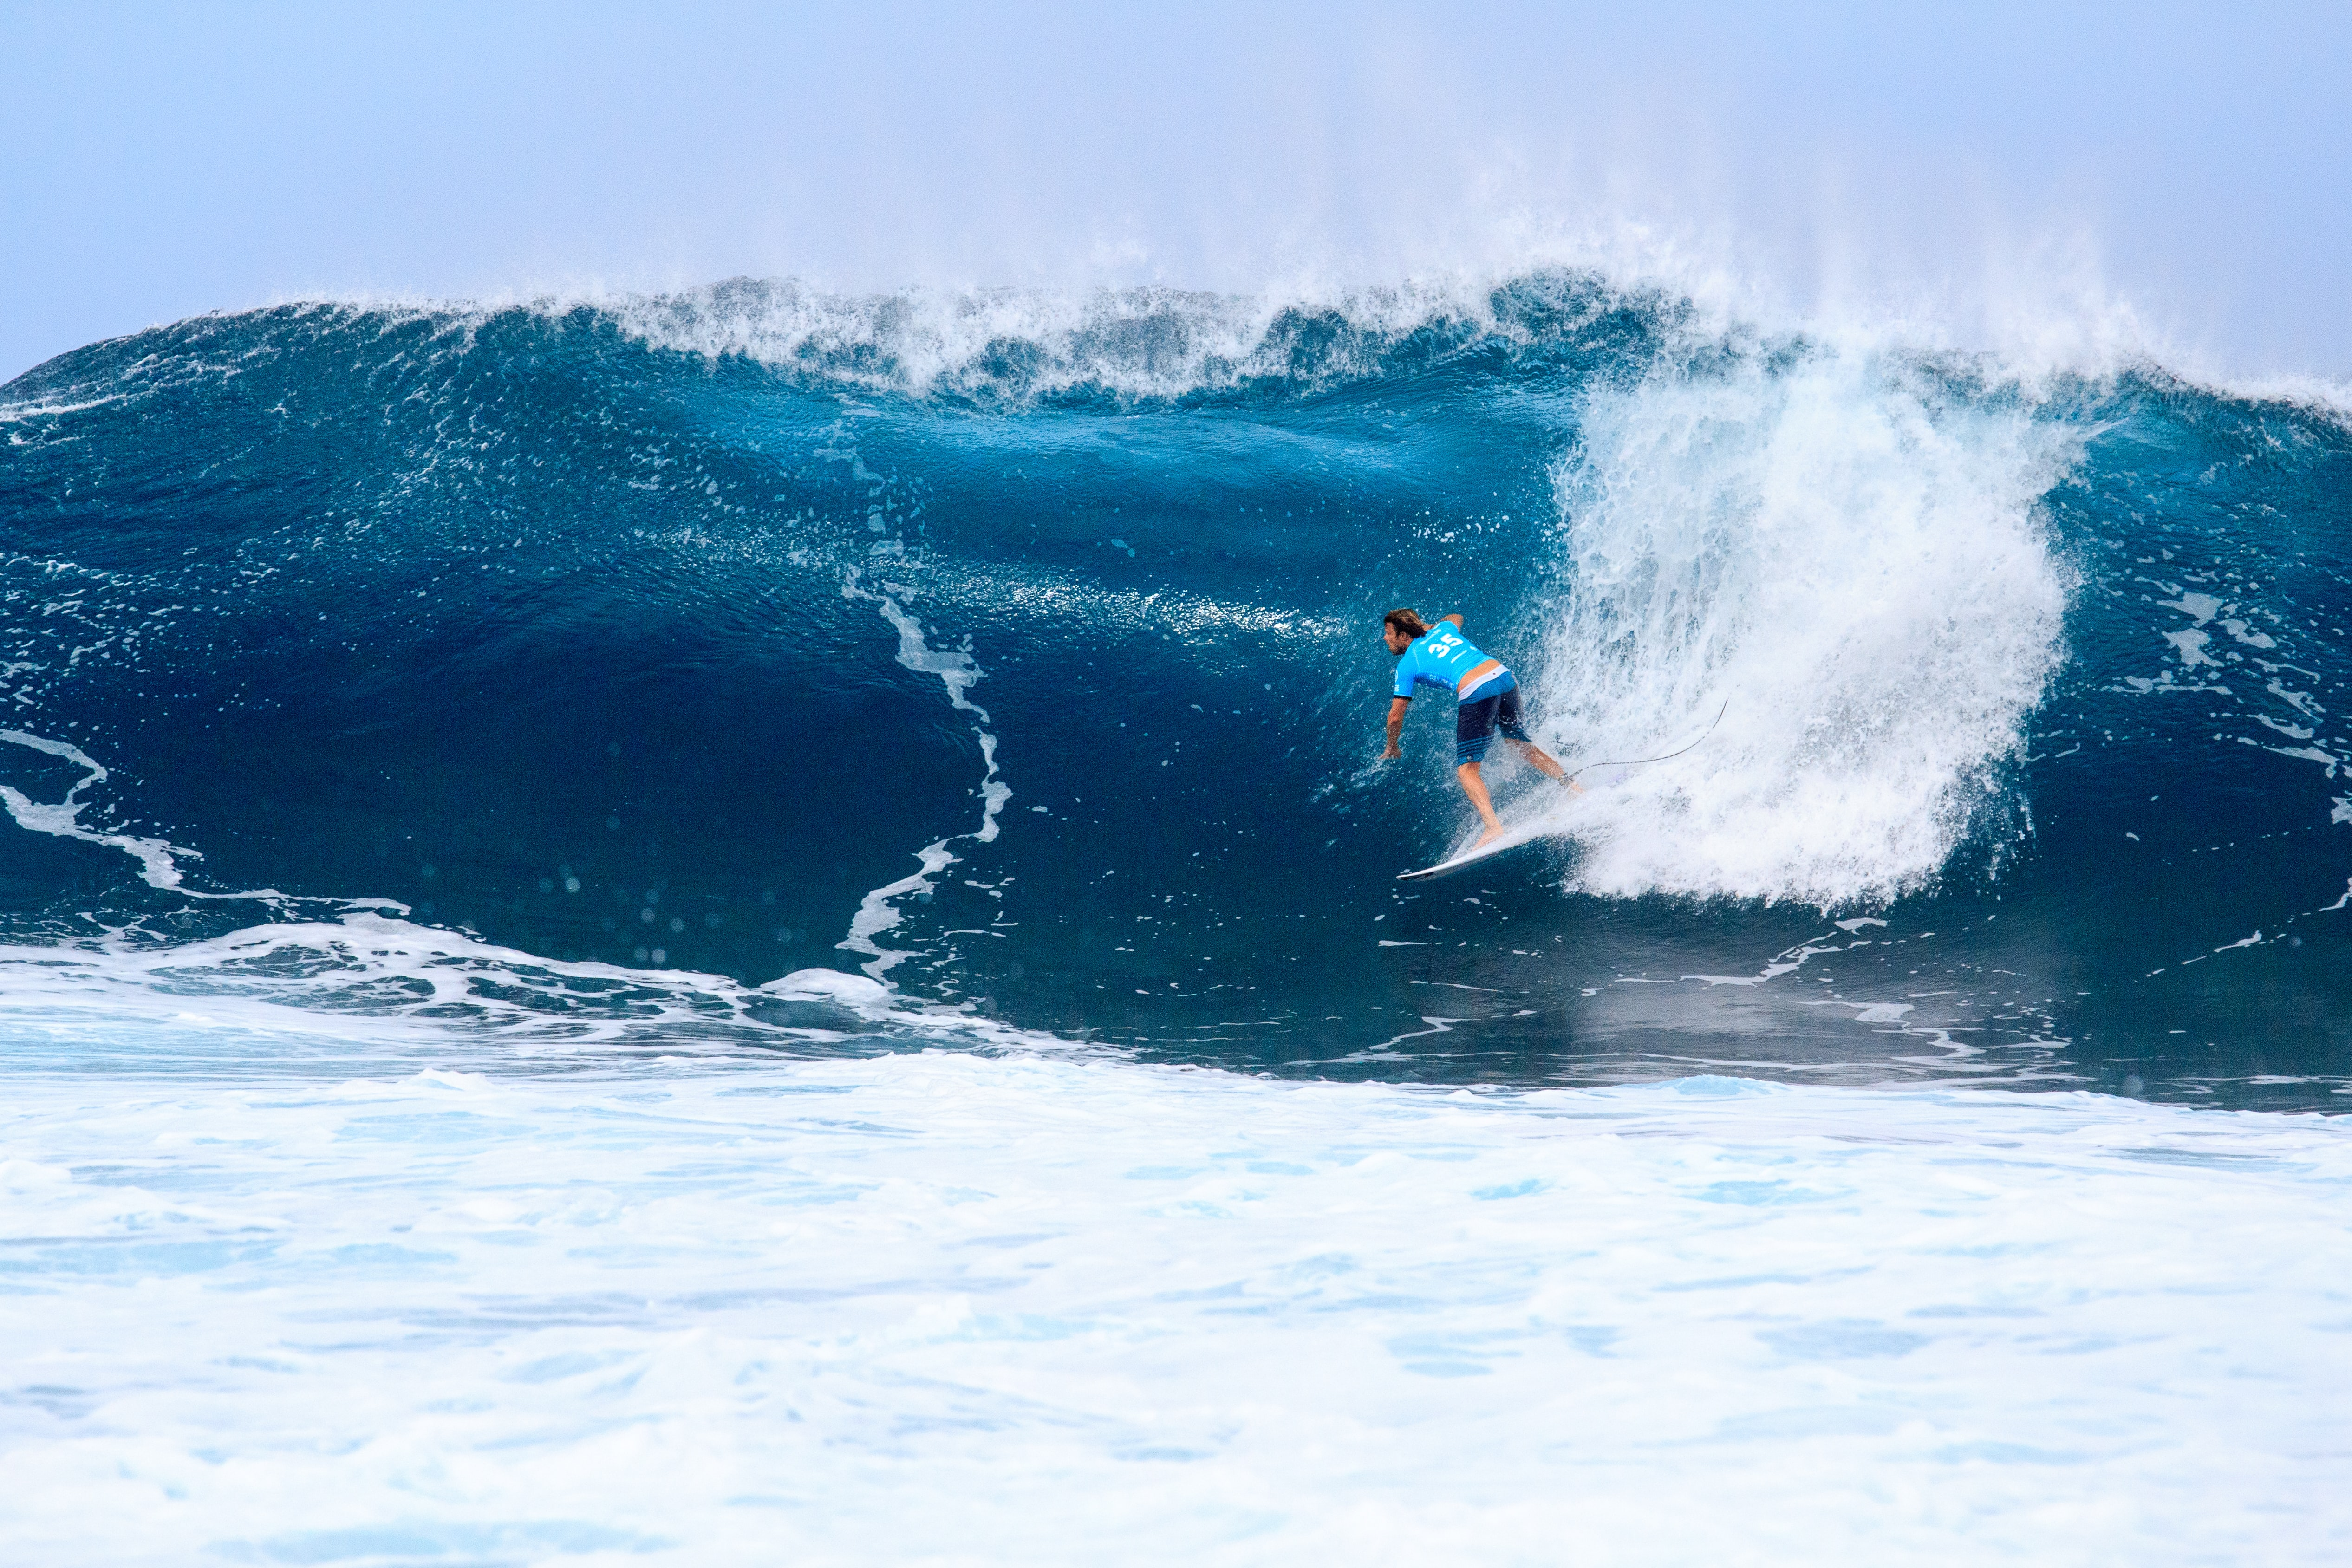 A man surfing a wave in the ocean in the Banzai Pipeline